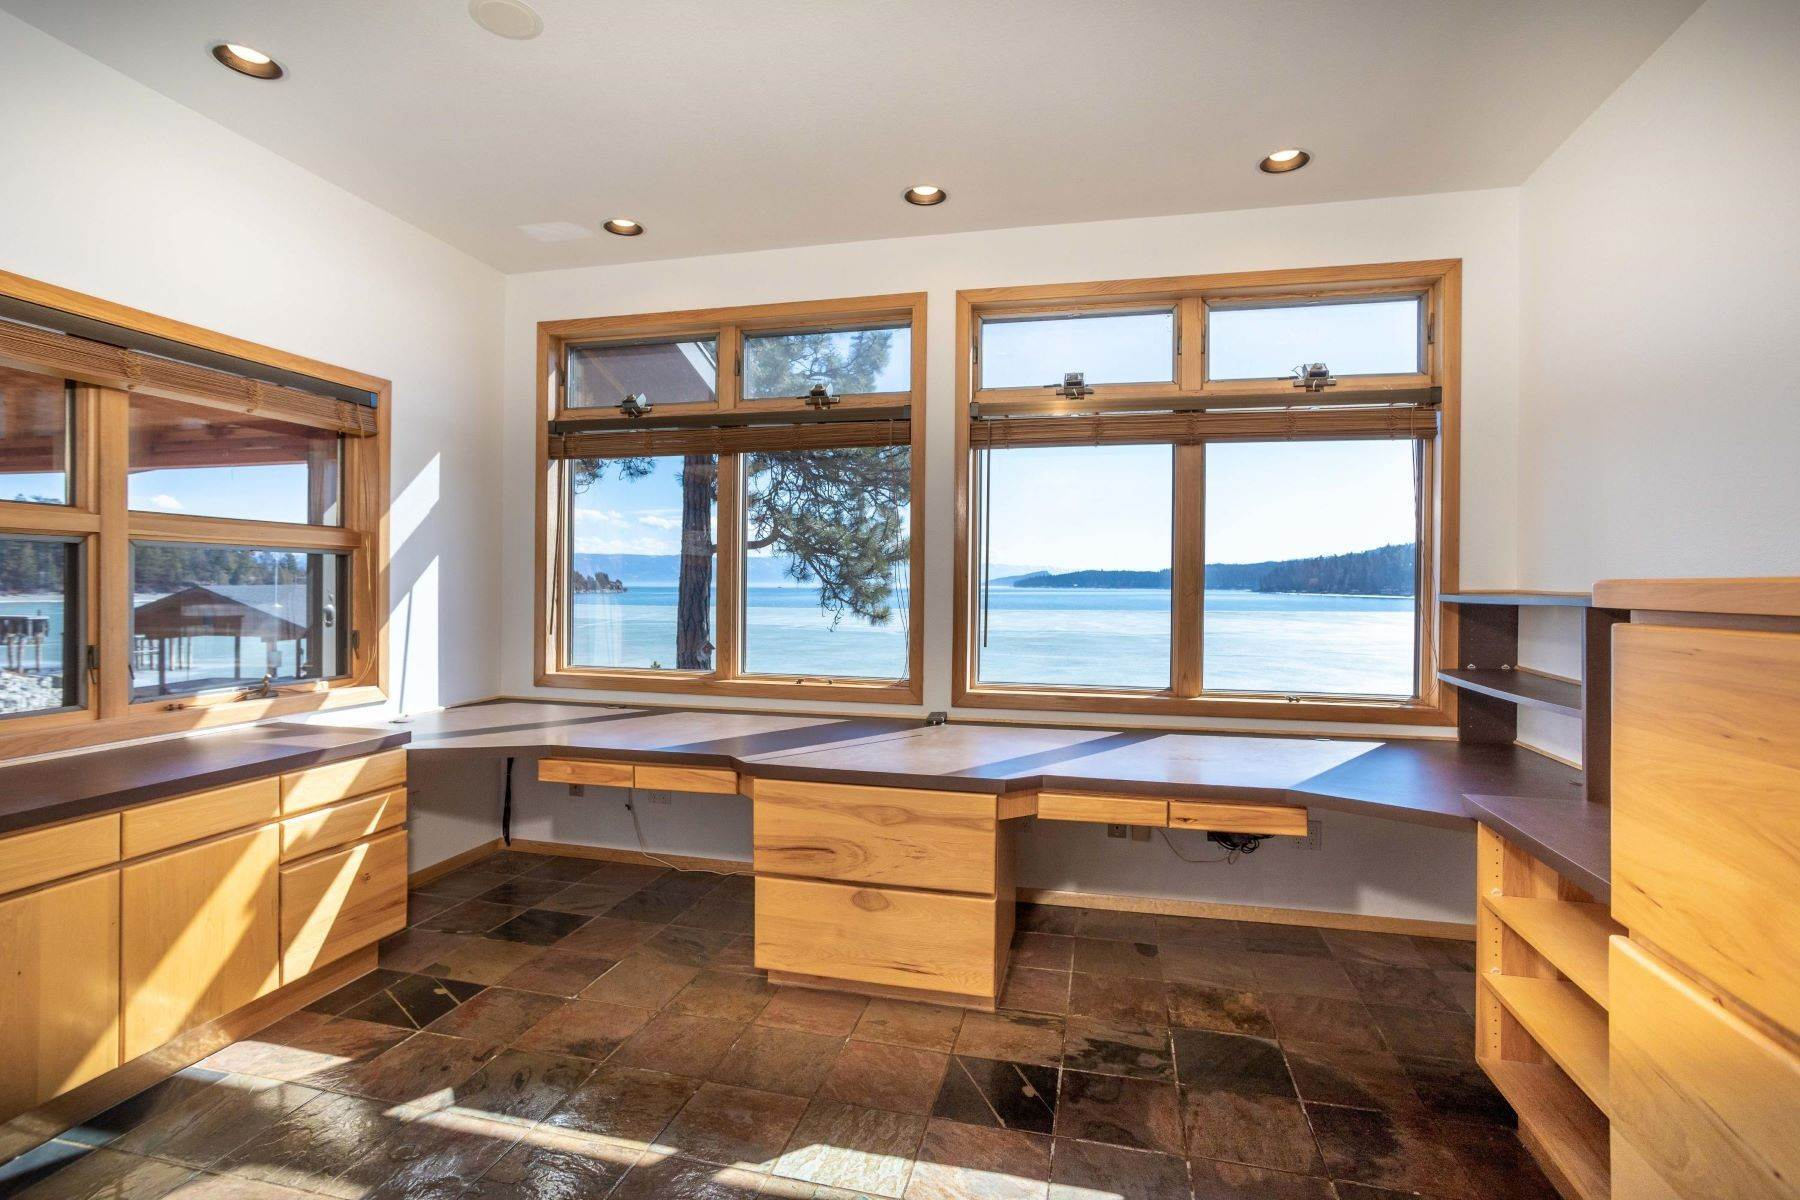 3. Single Family Homes for Sale at Flathead Lake Living 5505 Us Hwy 93 Somers, Montana 59932 United States